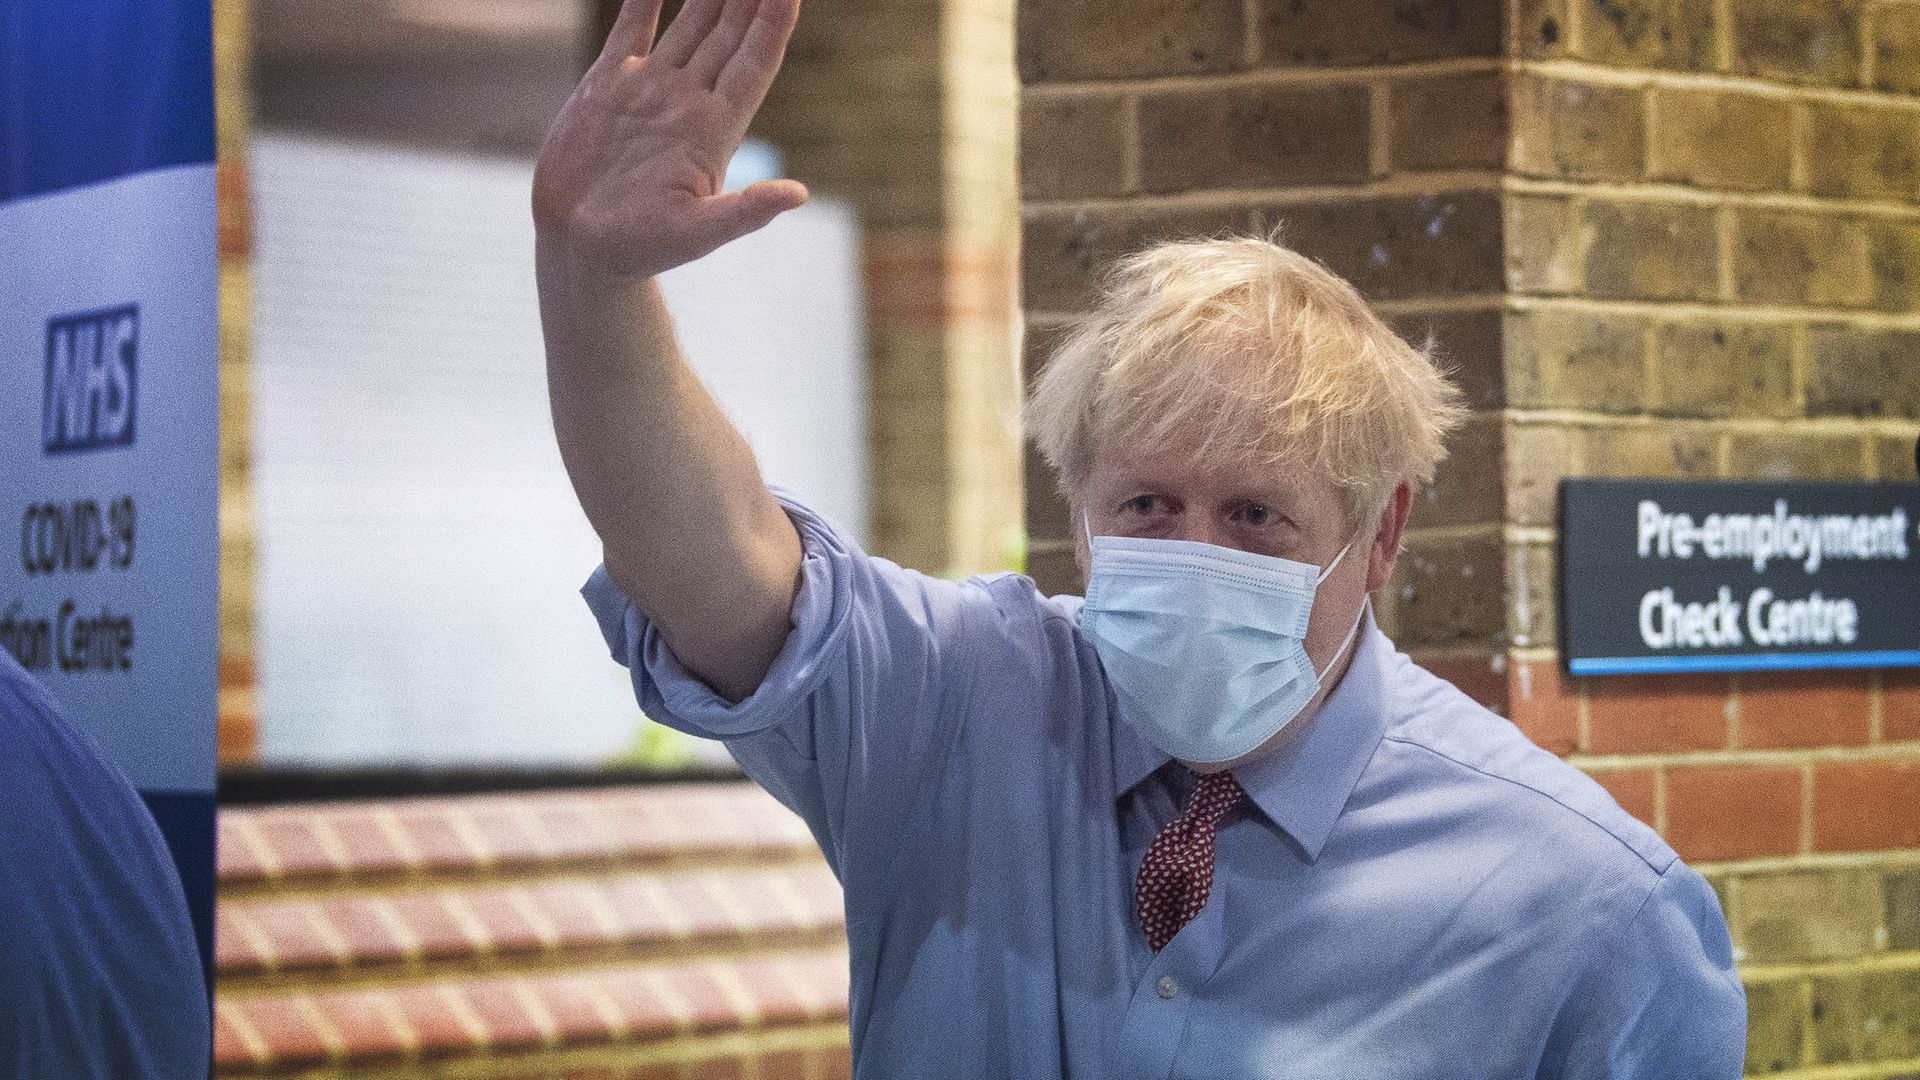 Prime minister Boris Johnson waves as he leaves Guy's Hospital in London, after watching a patient receive a Covid-19 vaccination jab on the first day of the largest immunisation programme in the UK's history - Credit: PA